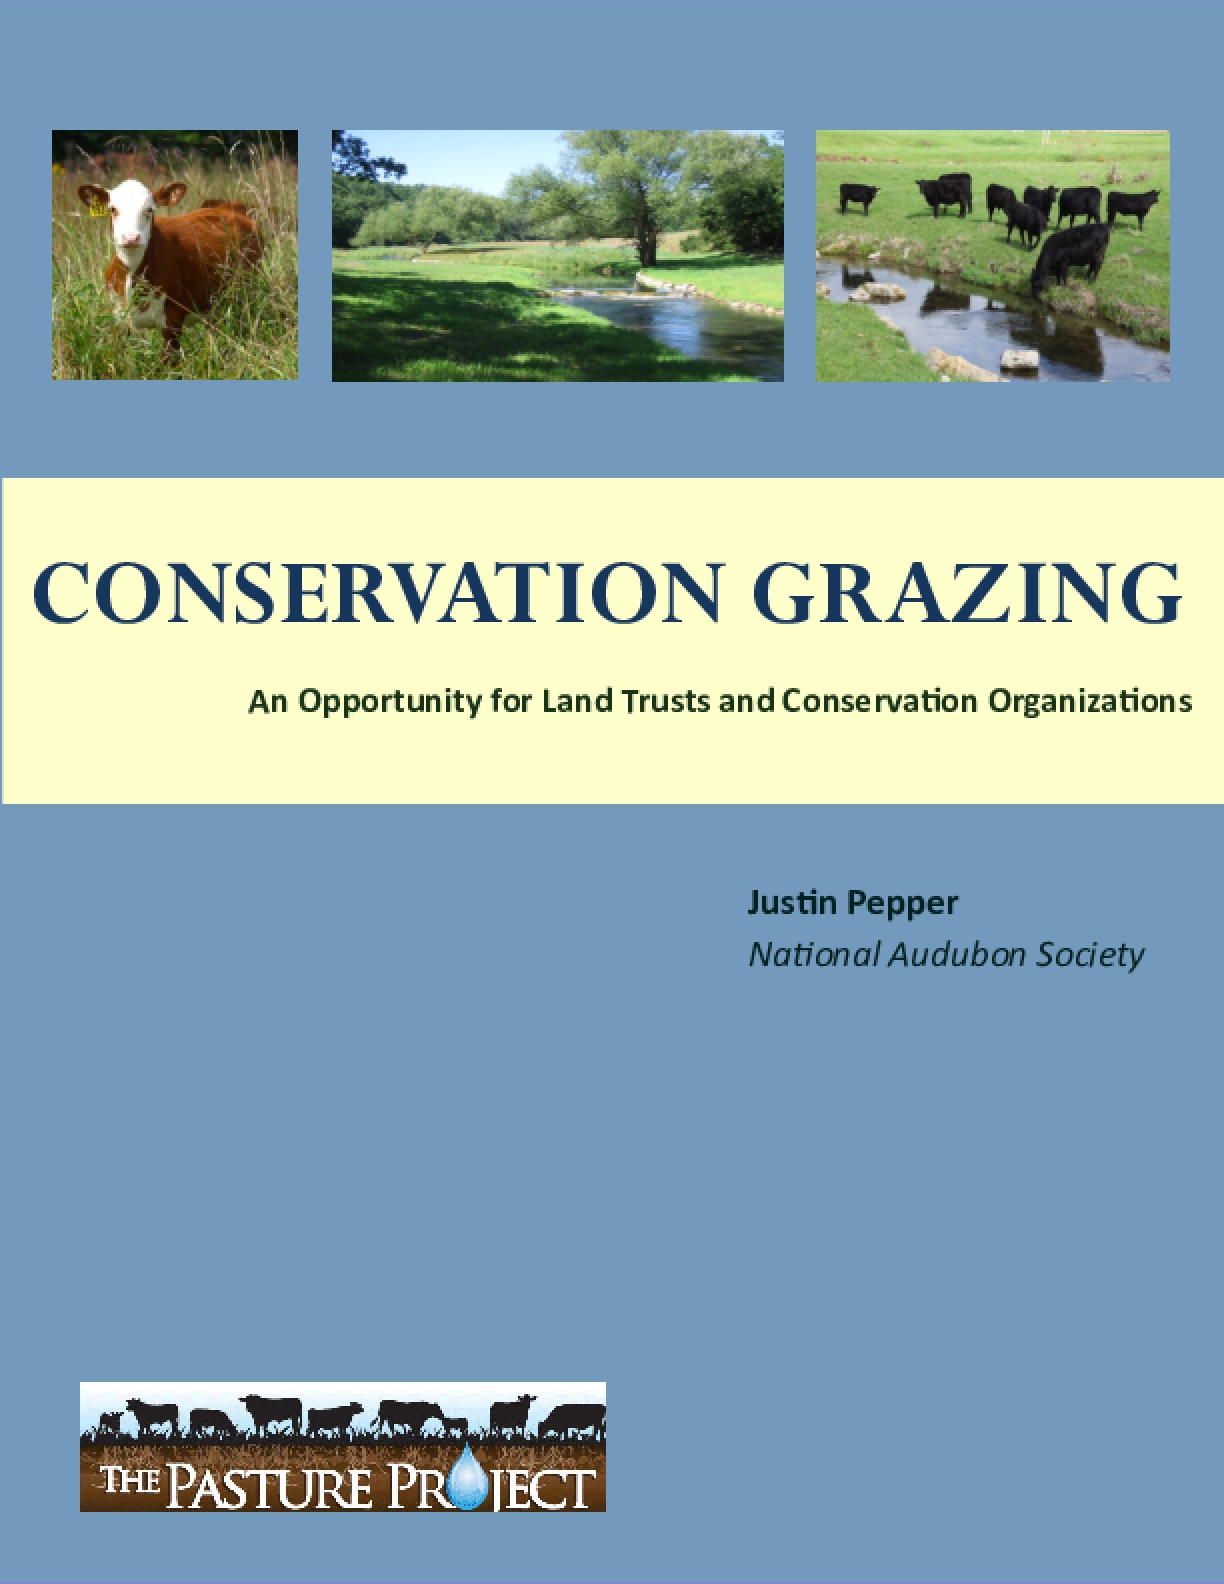 Conservation Grazing: An Opportunity for Land Trusts and Conservation Organizations